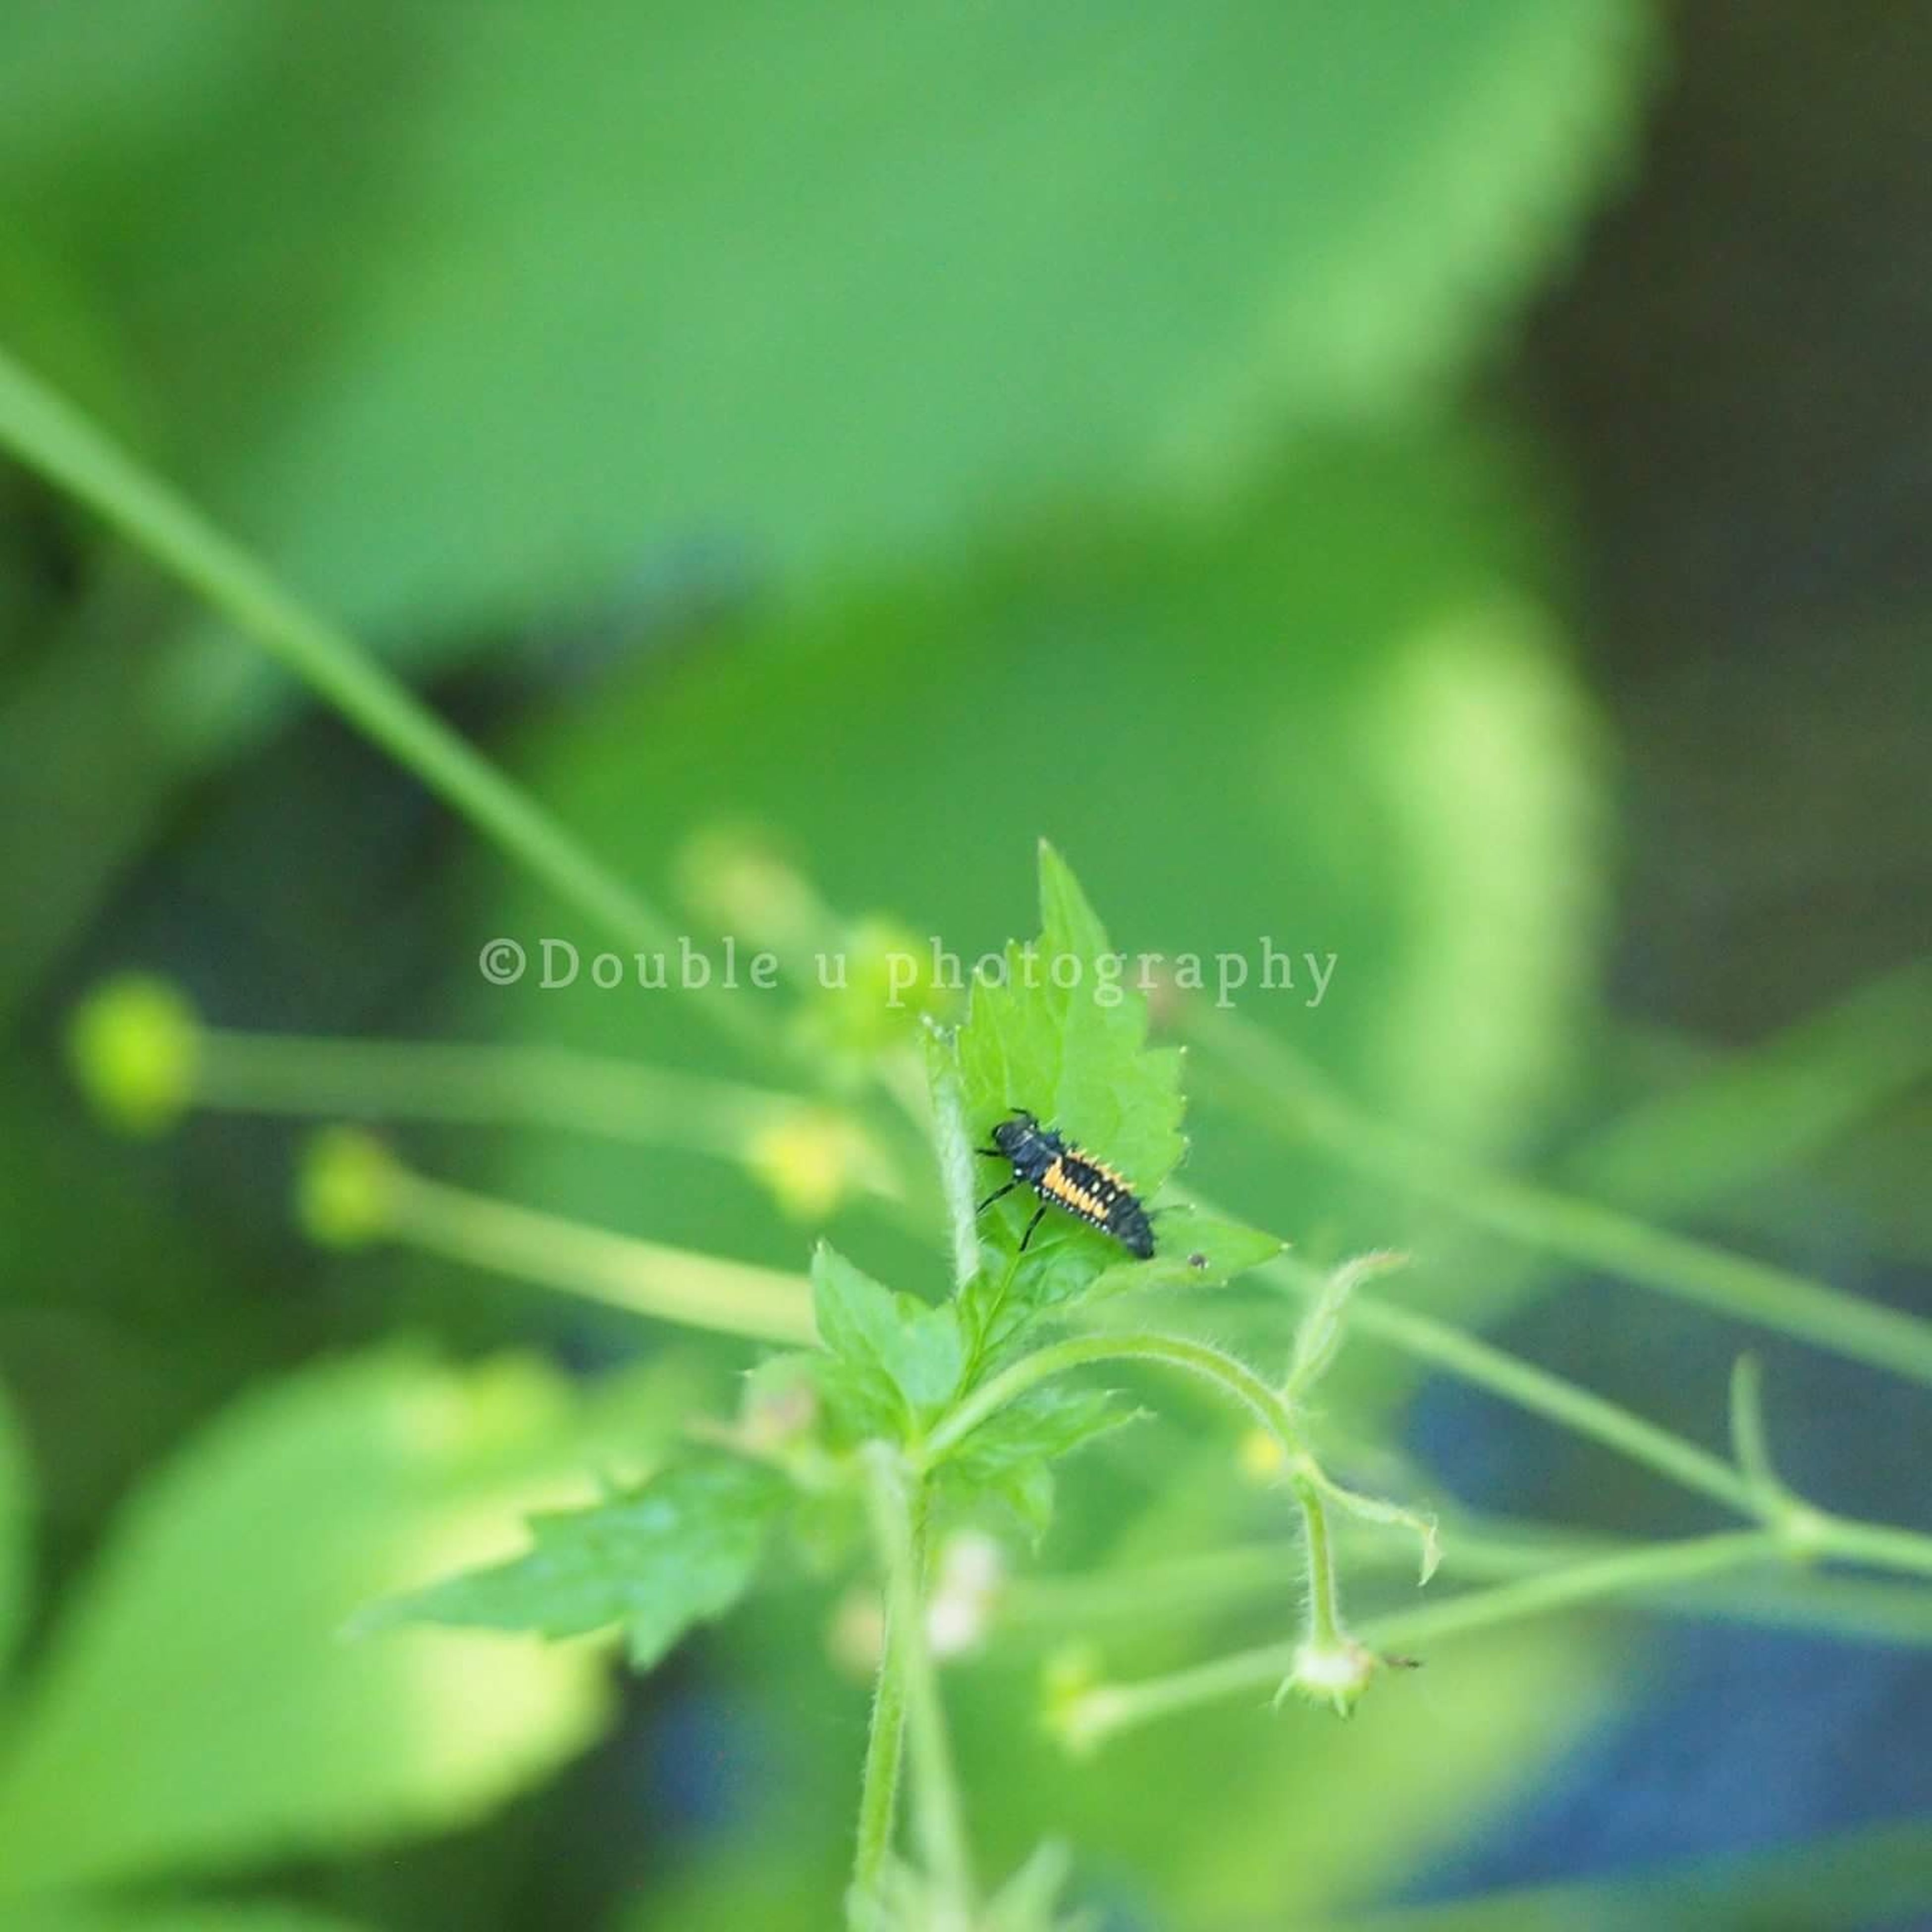 insect, one animal, animal themes, animals in the wild, green color, leaf, animal wildlife, day, nature, outdoors, close-up, plant, no people, grasshopper